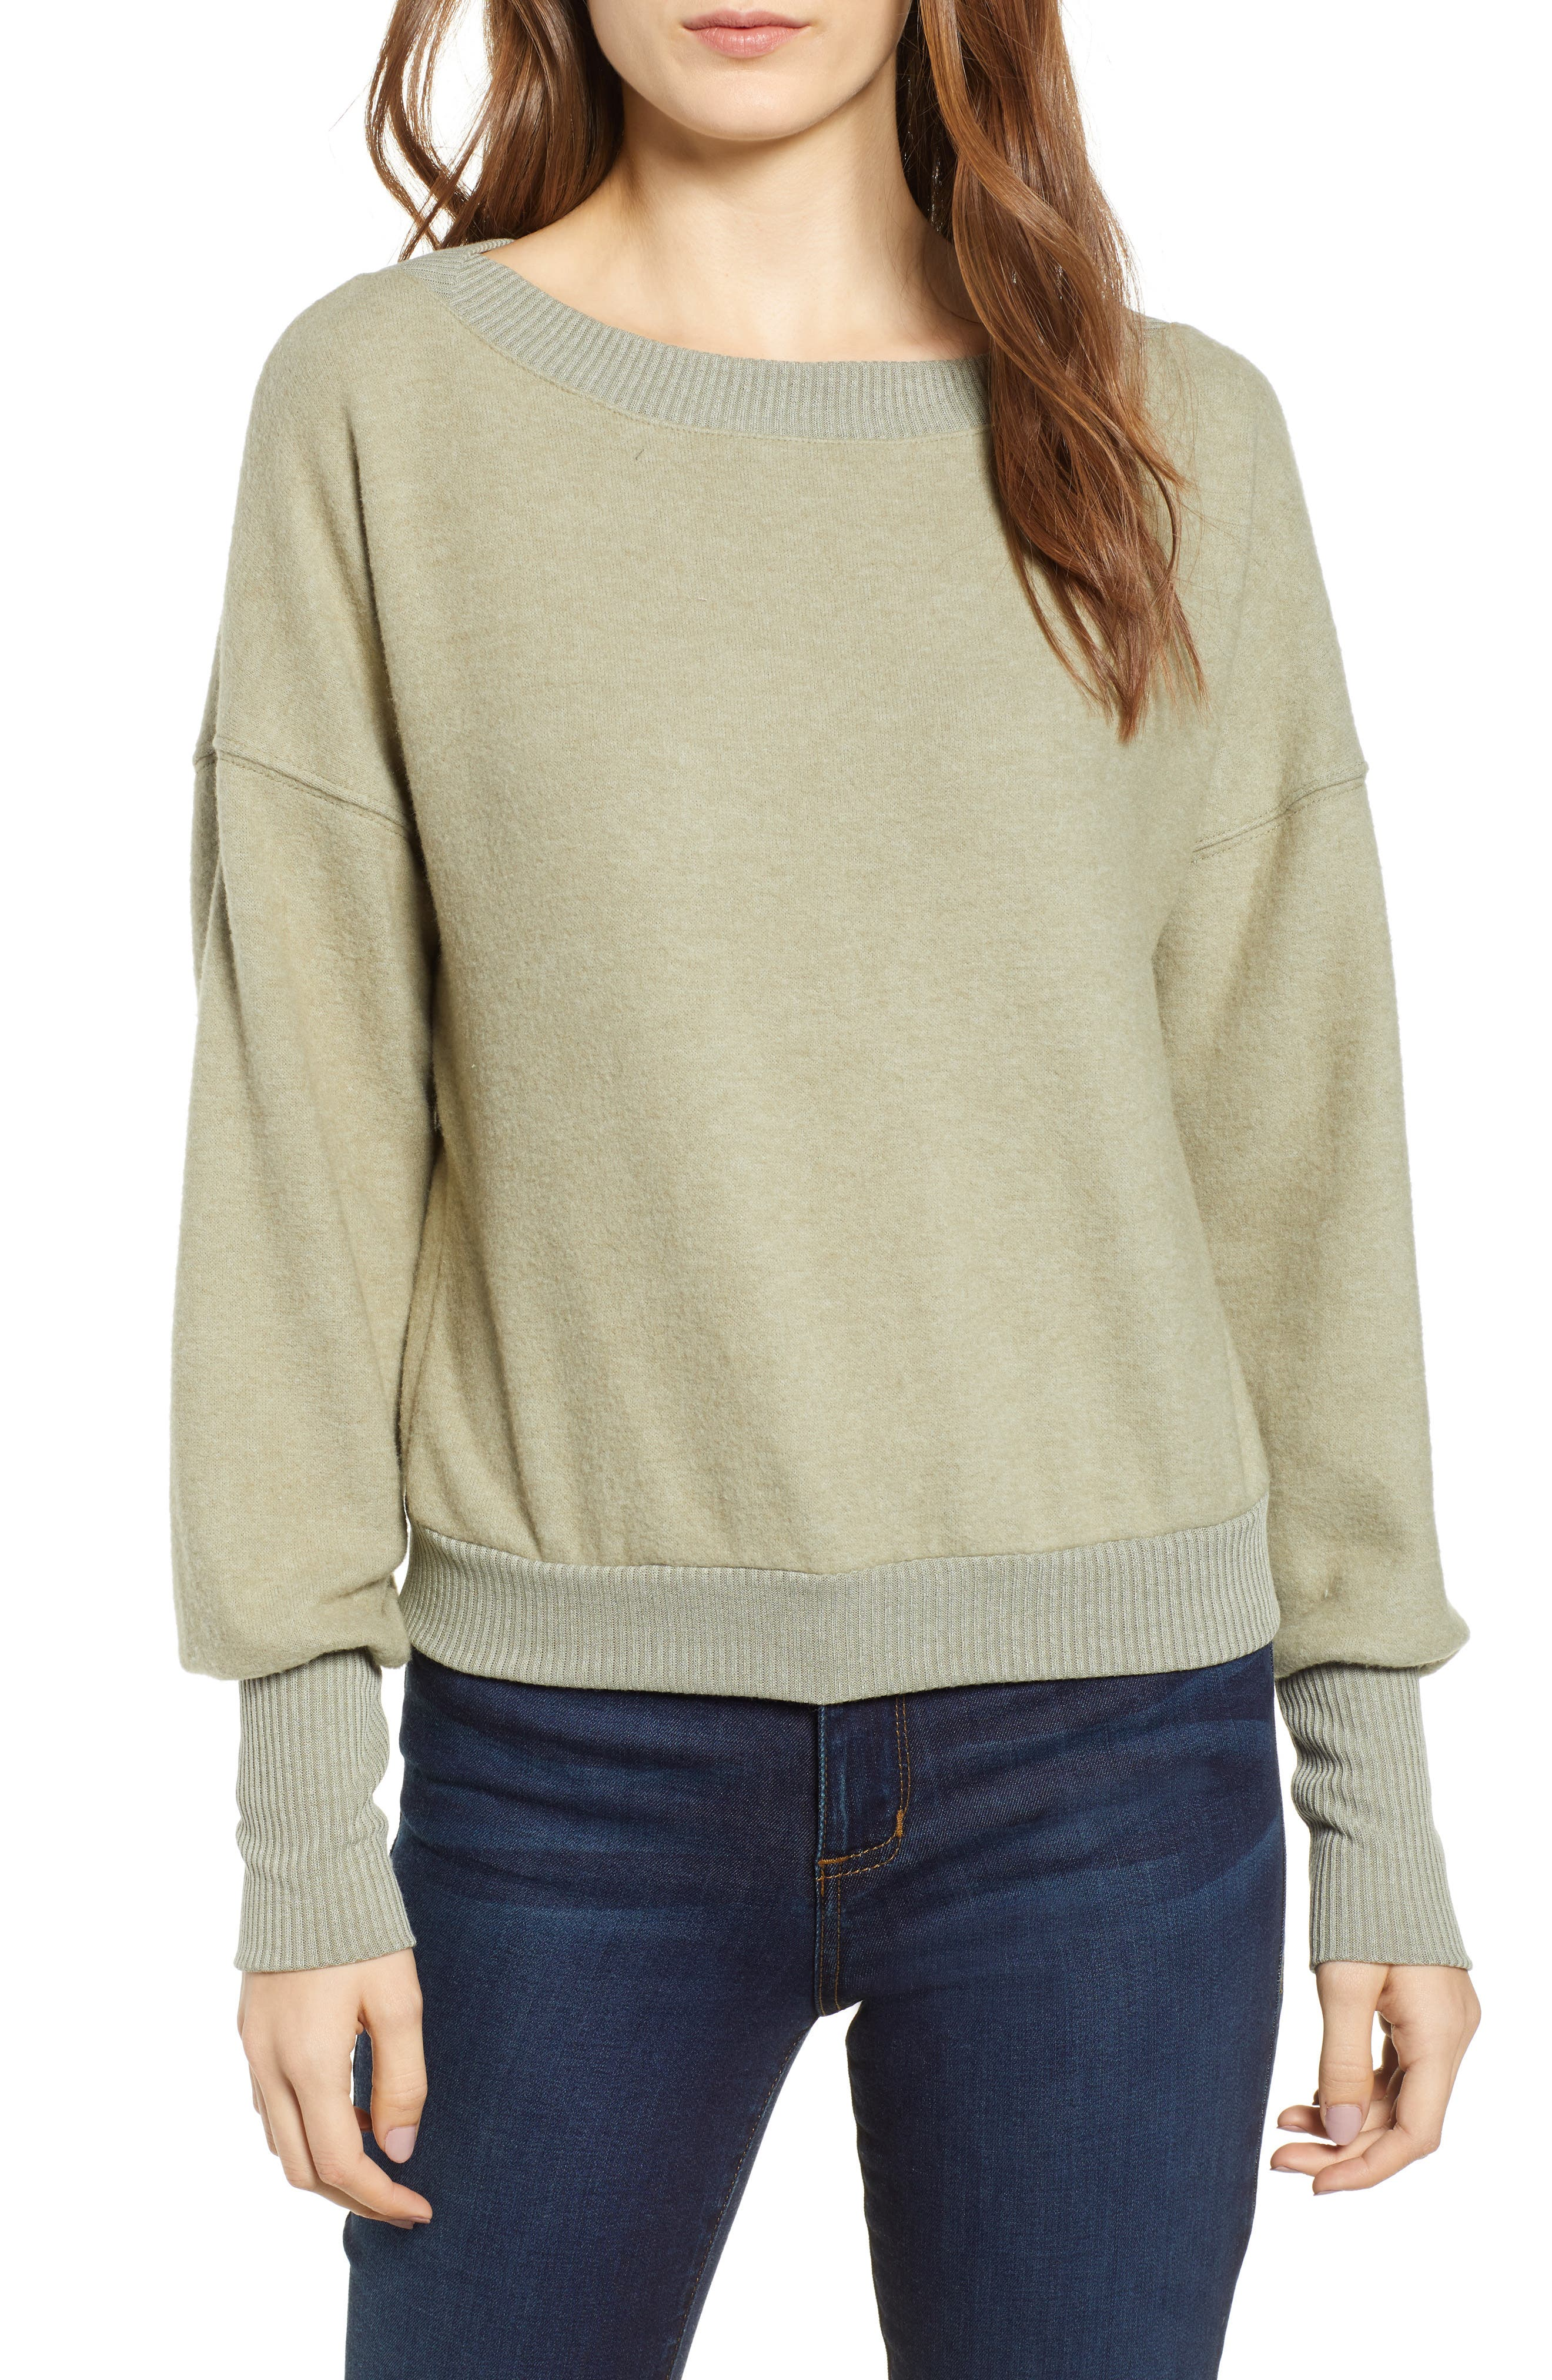 Darwin Cozy Sweatshirt,                         Main,                         color, CAPERS